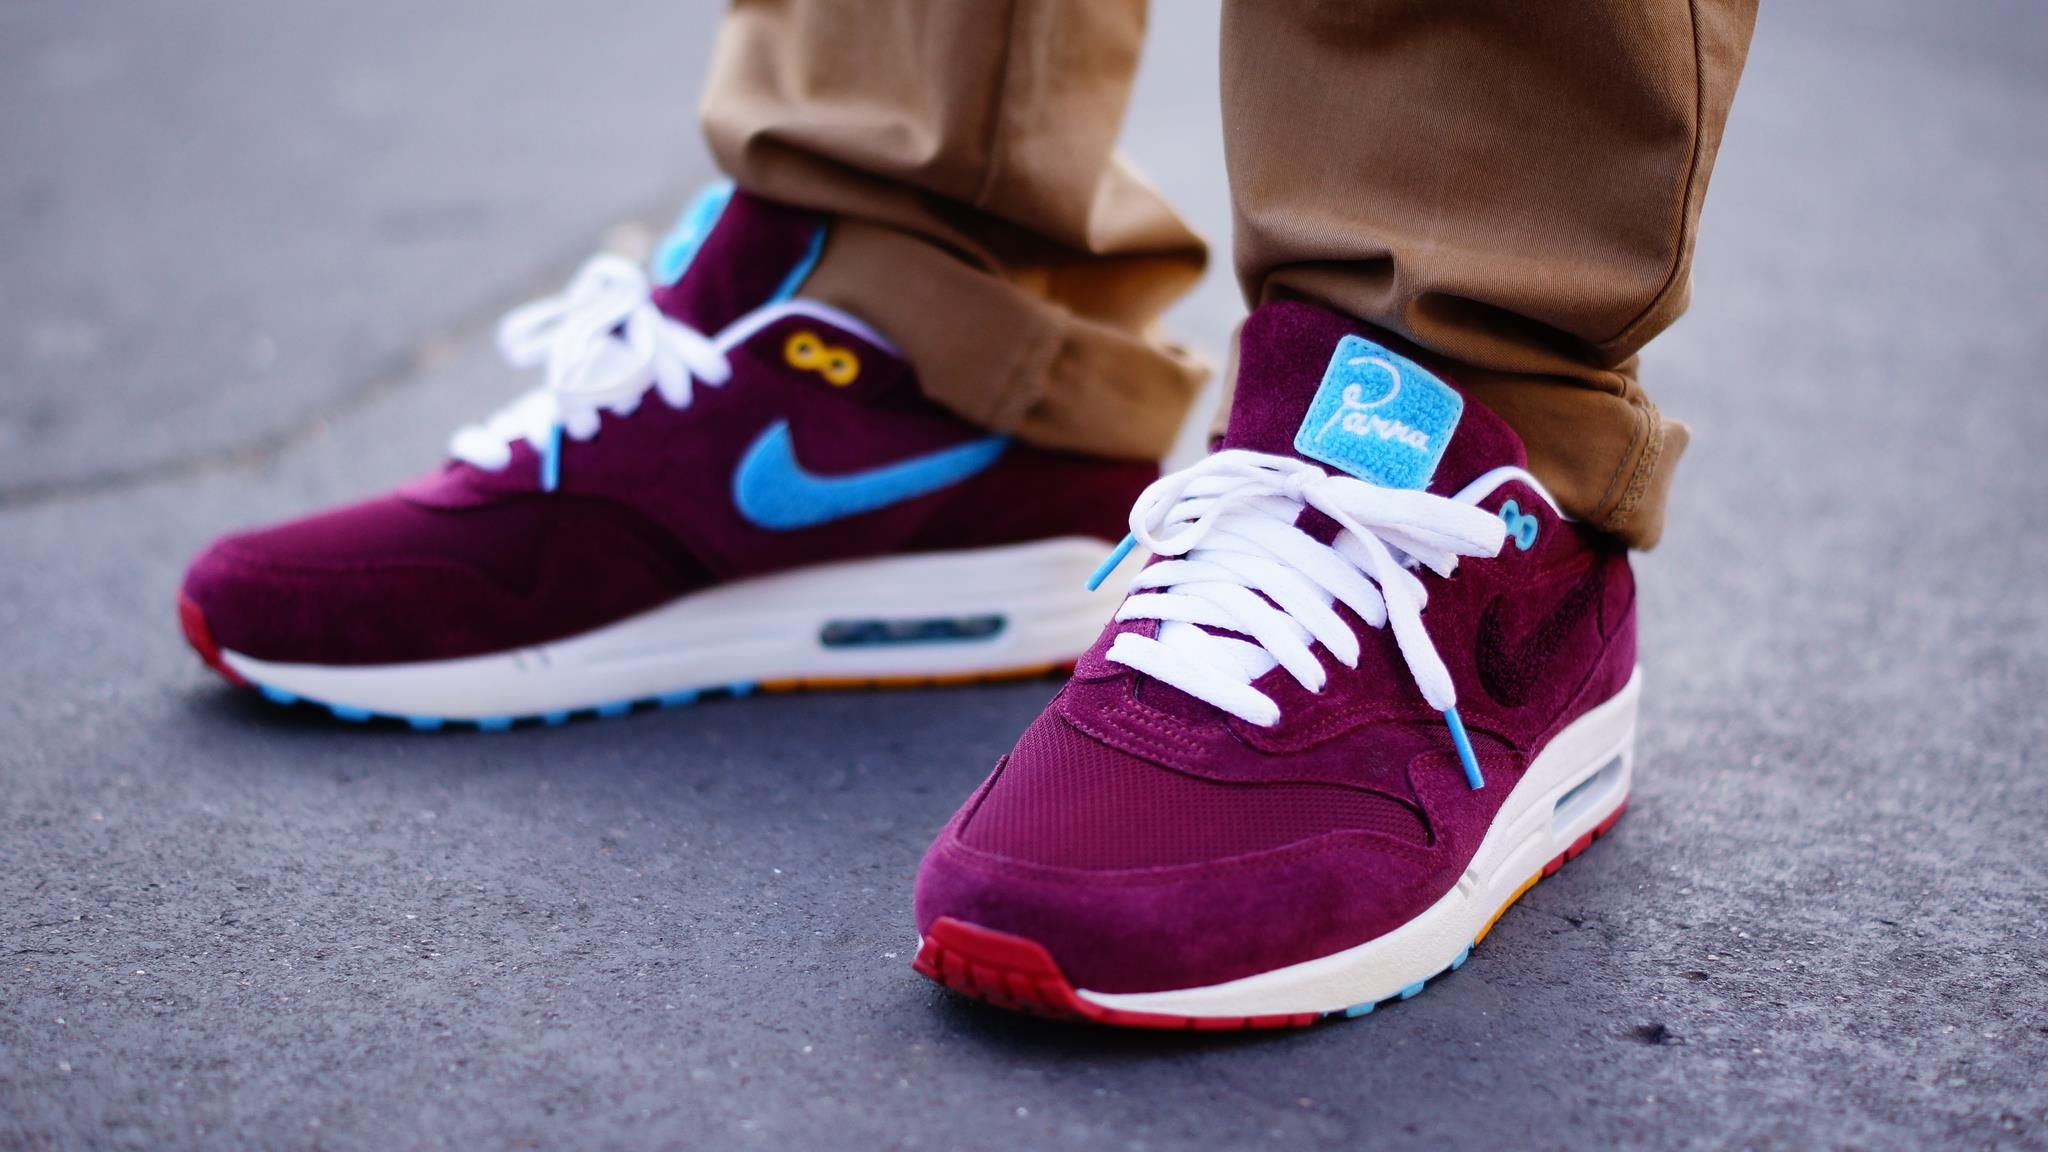 6f7850034a0427  Nike x  Parra x  Patta  AirMax1 This super limited  AM1 is a collaboration  between Parra